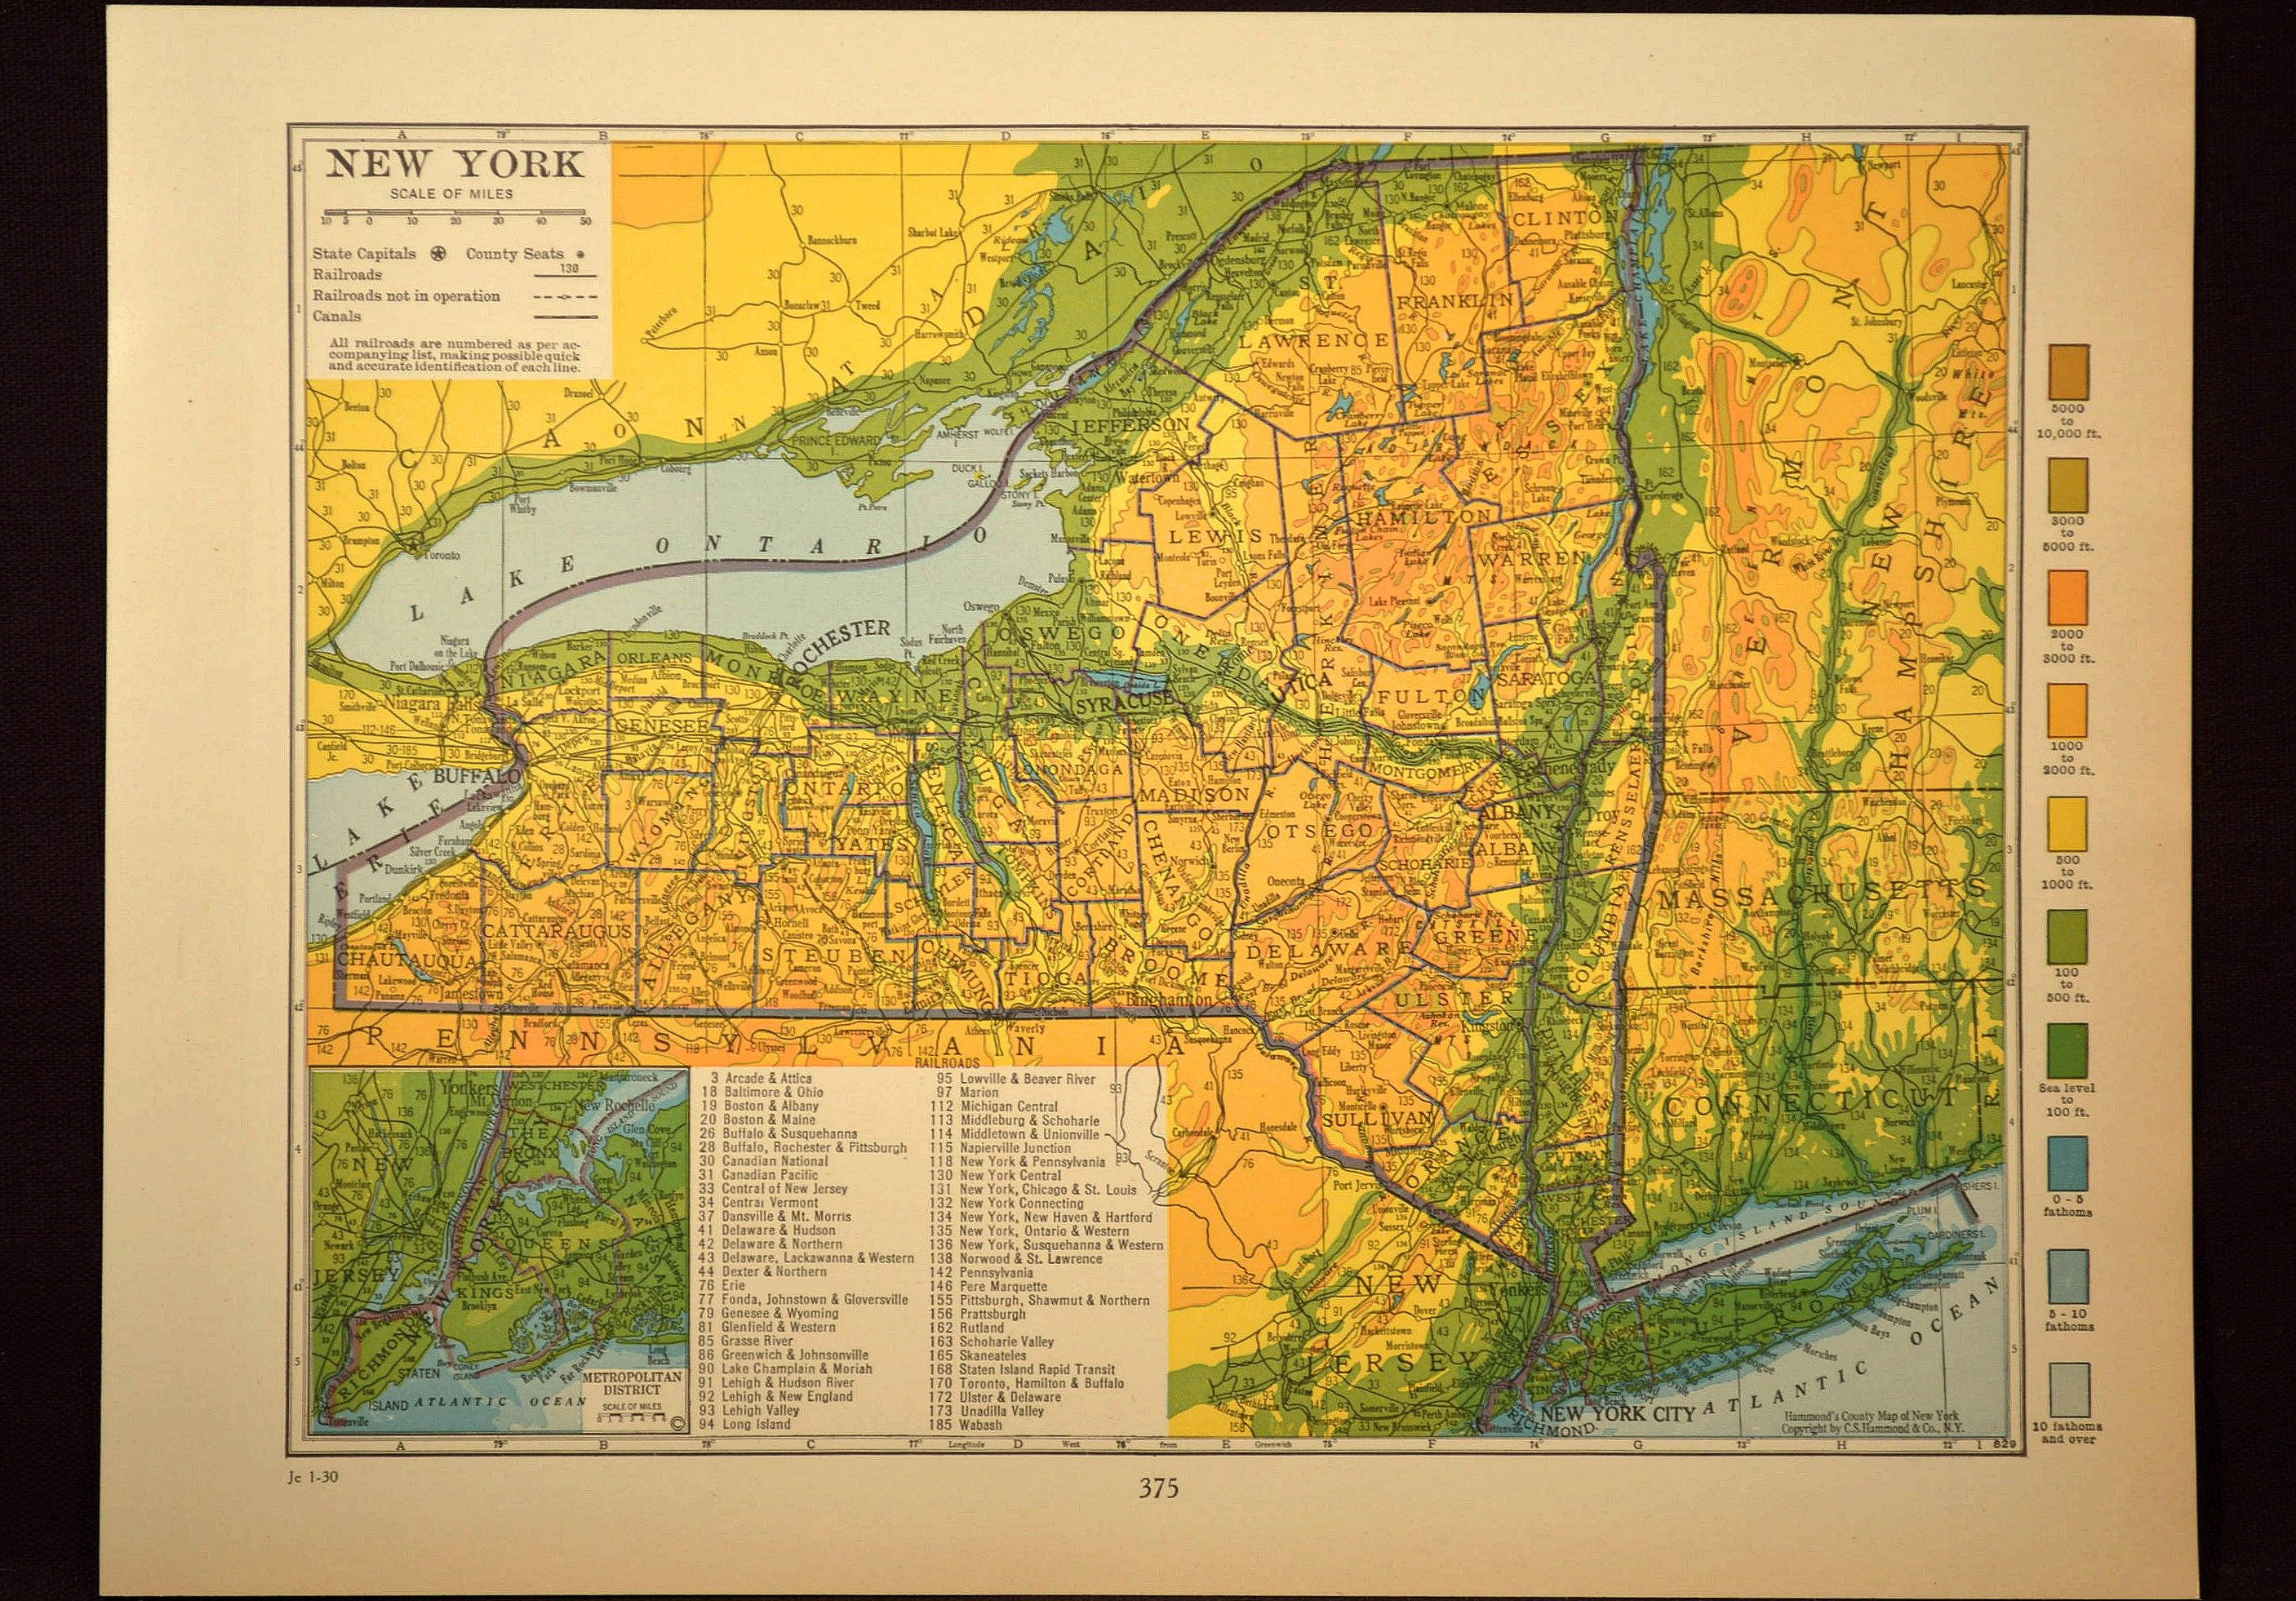 New York Map New York Topographic Map Colorful Colored Topo ...